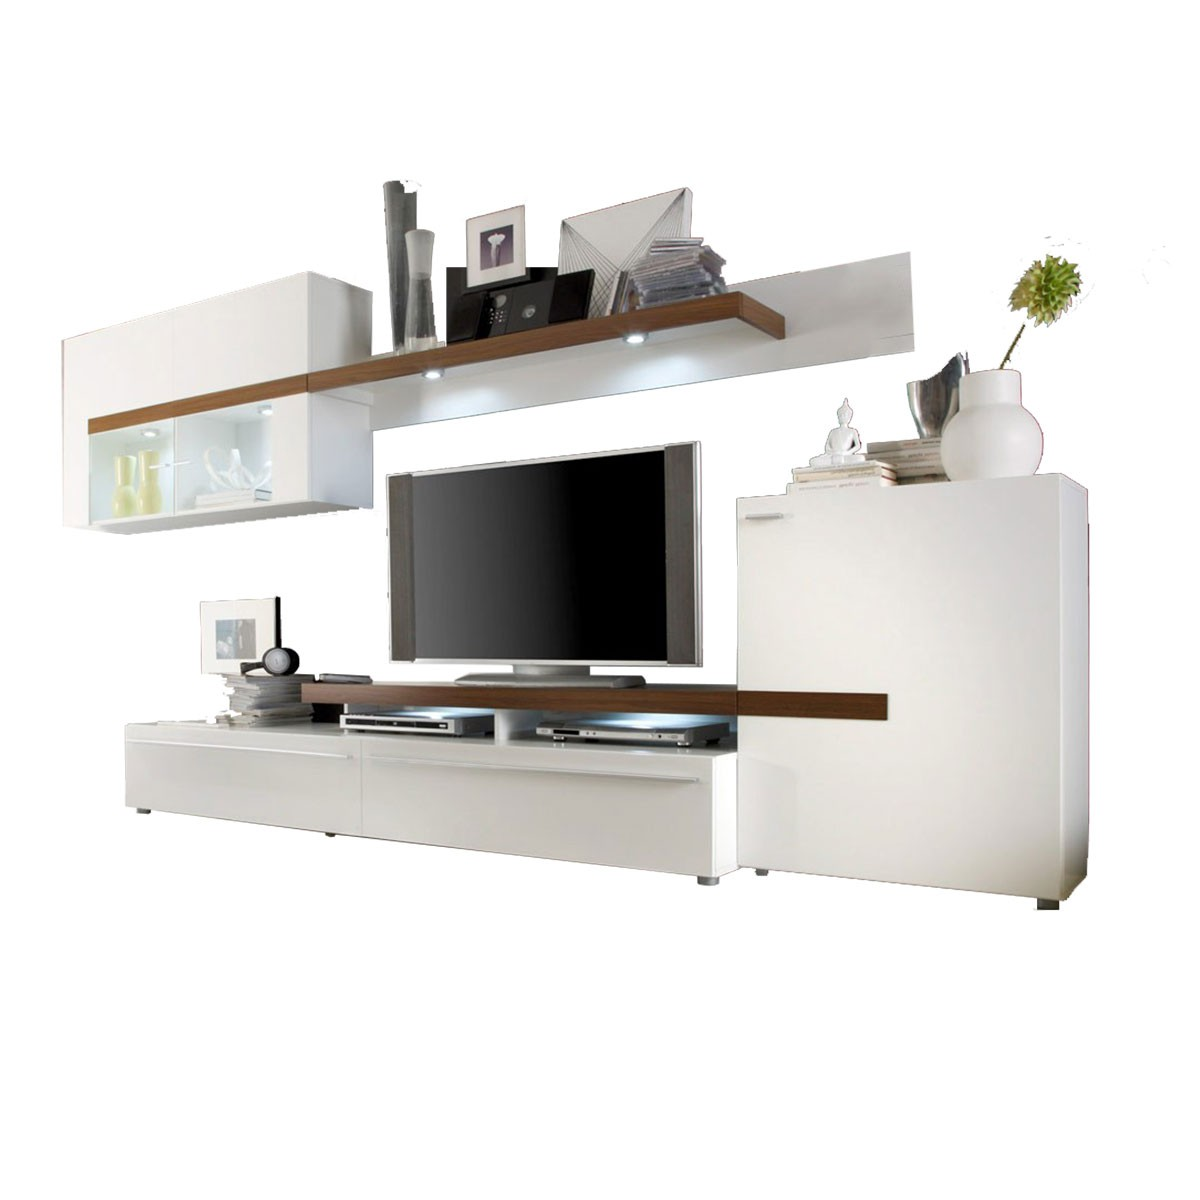 wohnwand anbauwand schrankwand gogo in wei walnuss 339cm breit ebay. Black Bedroom Furniture Sets. Home Design Ideas